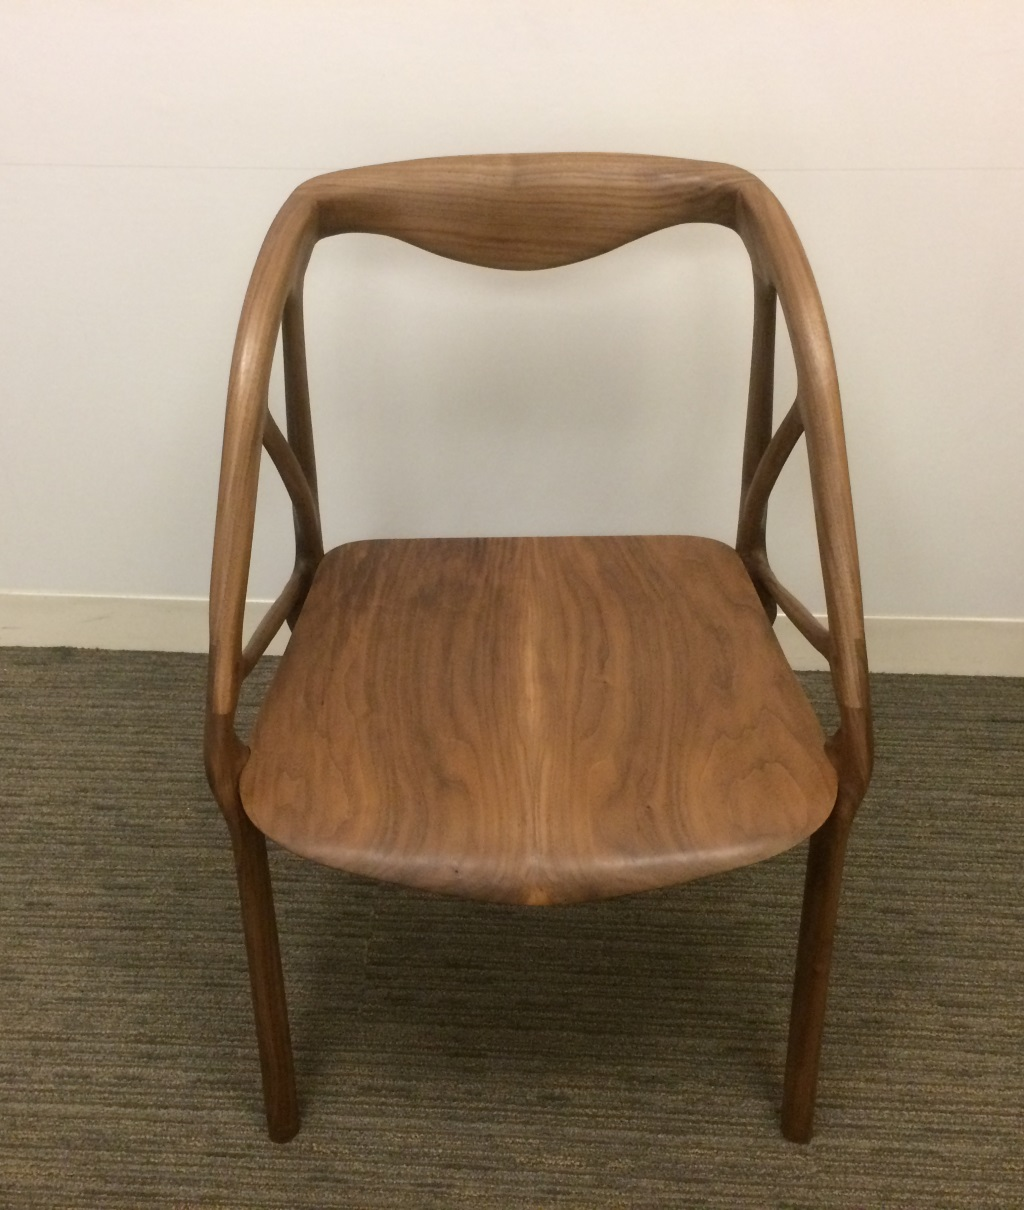 Generative Design Chair in the office of the CTO - Revit news